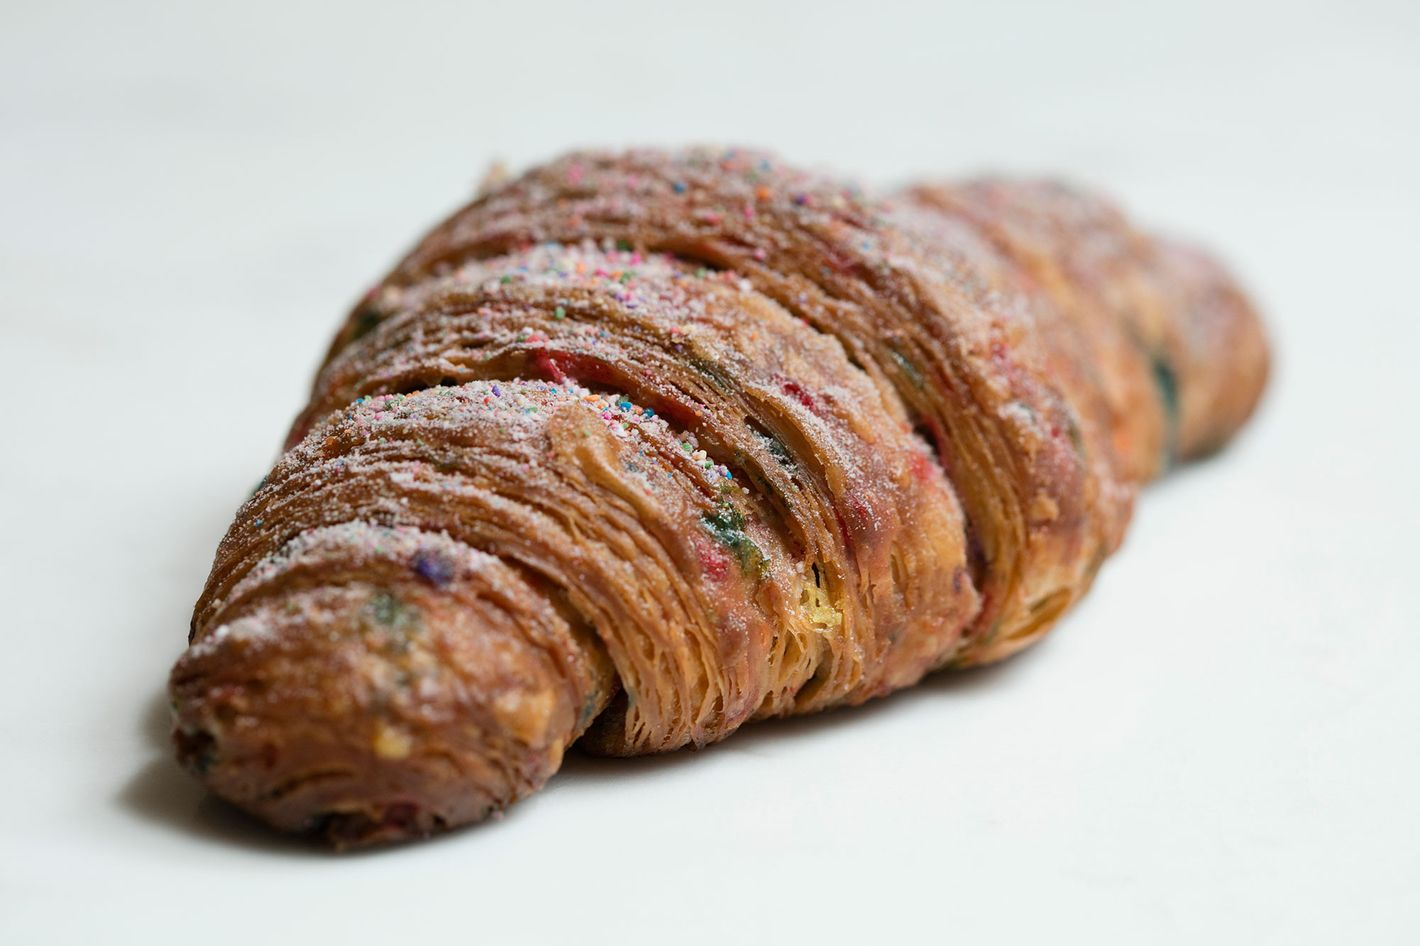 Where to Find New York's Most Innovative Croissants